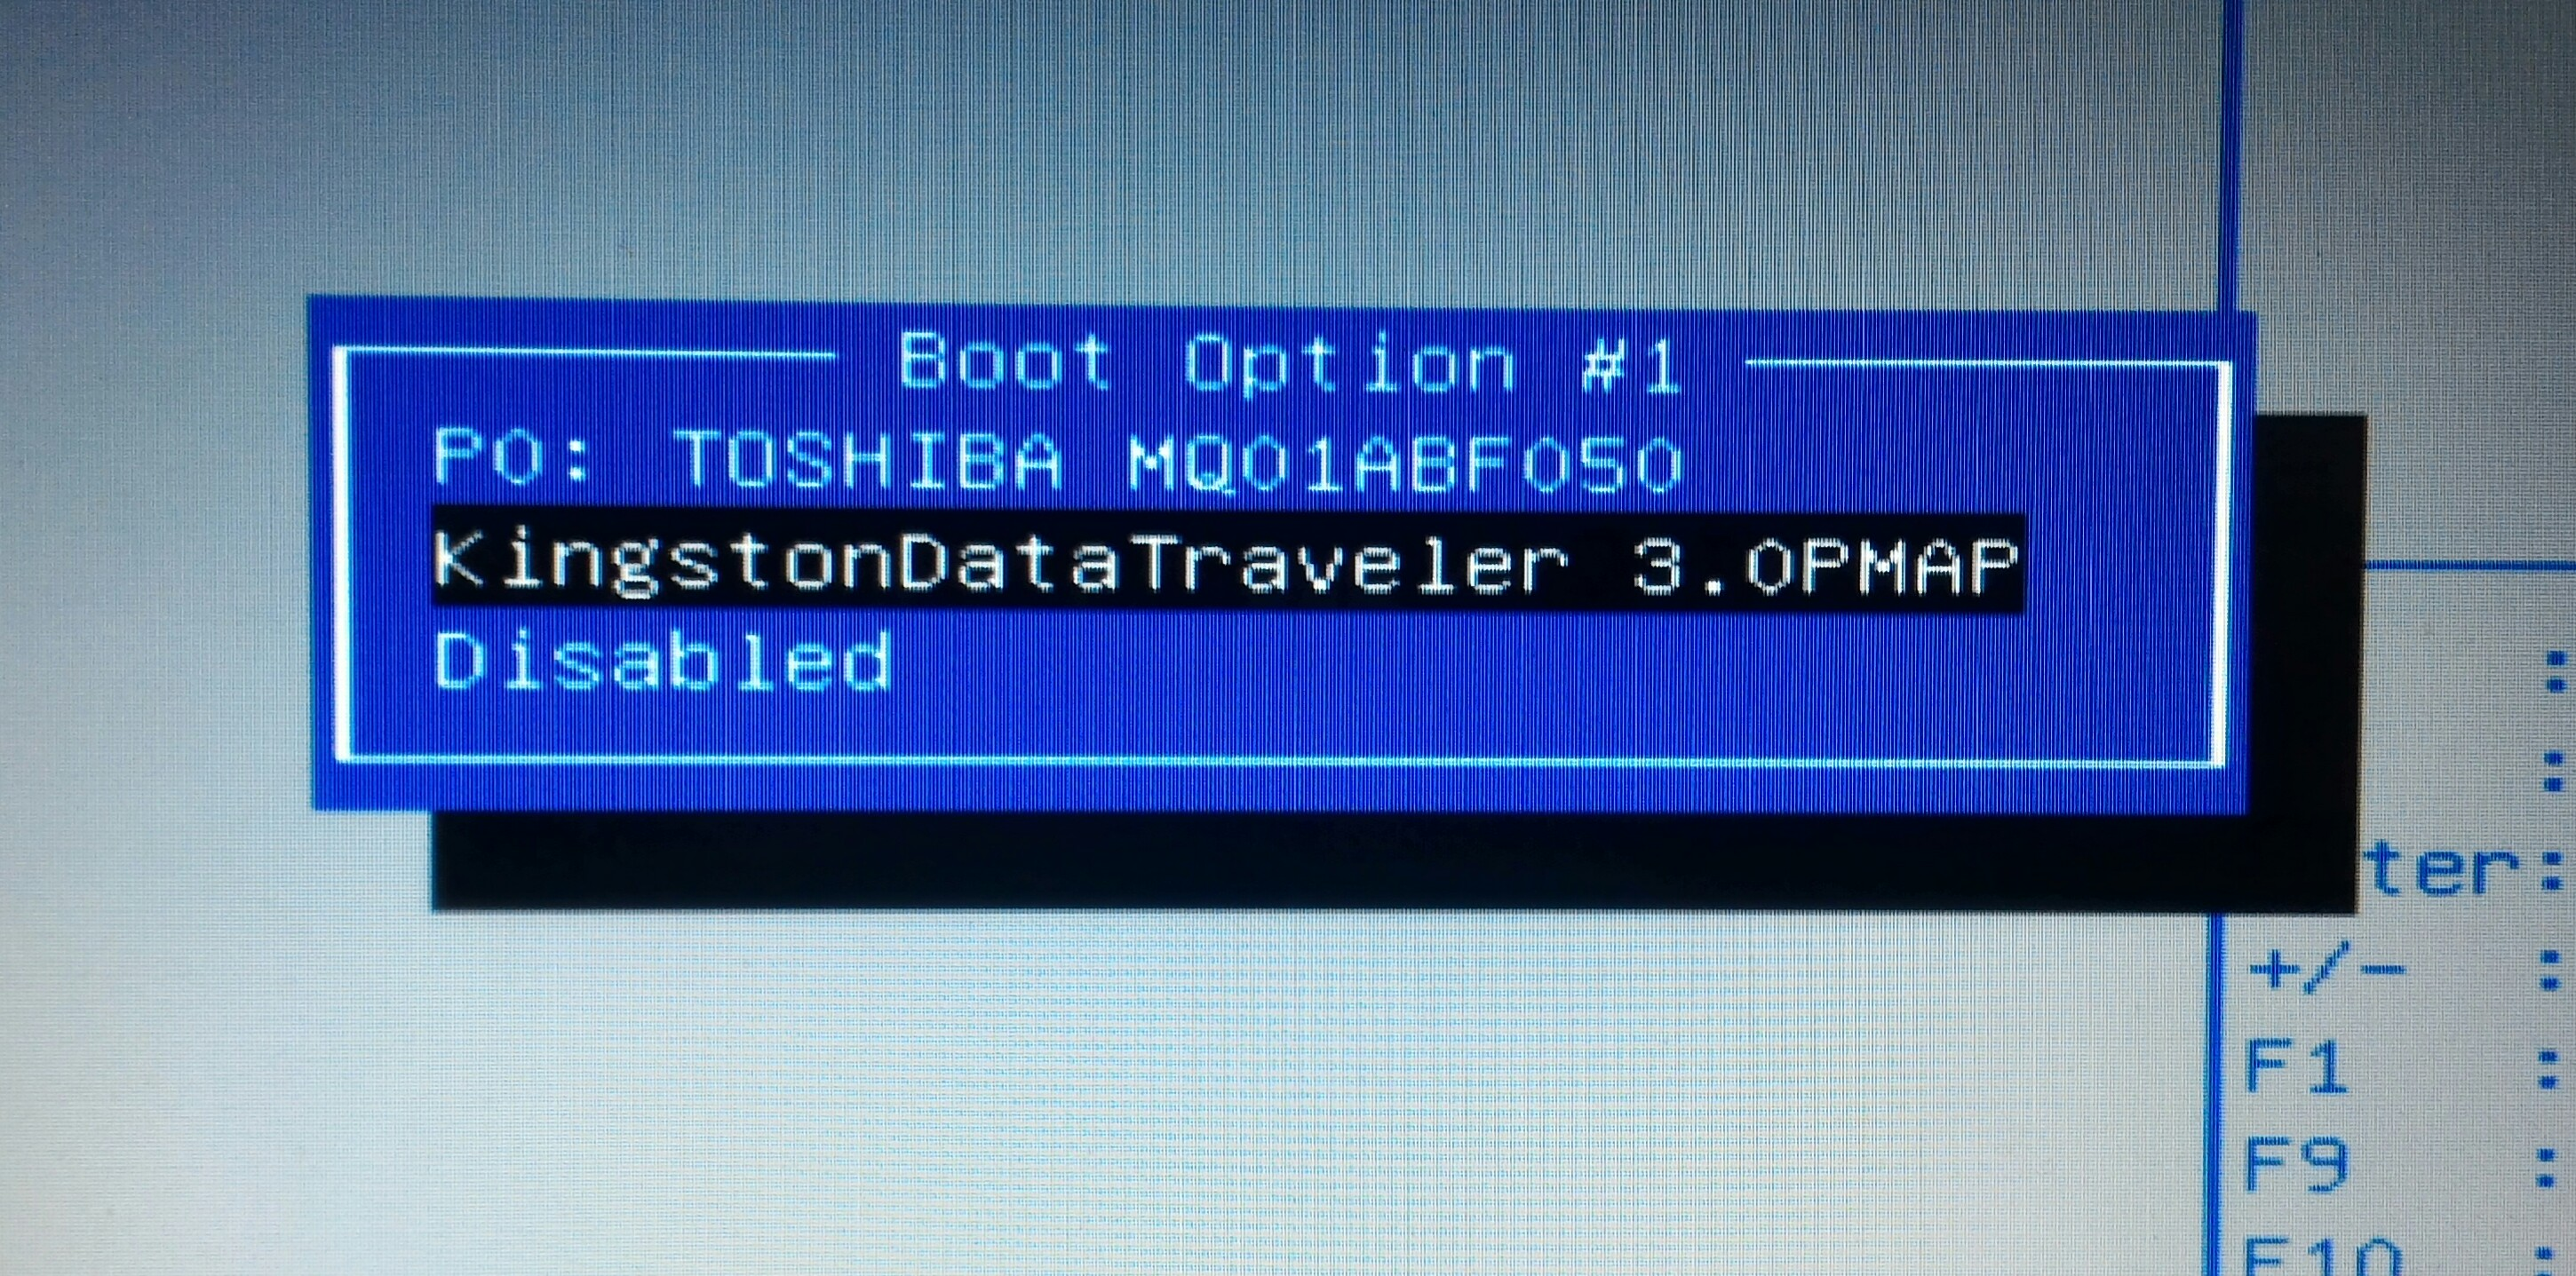 How do I start (boot) my computer from a USB device or DVD with